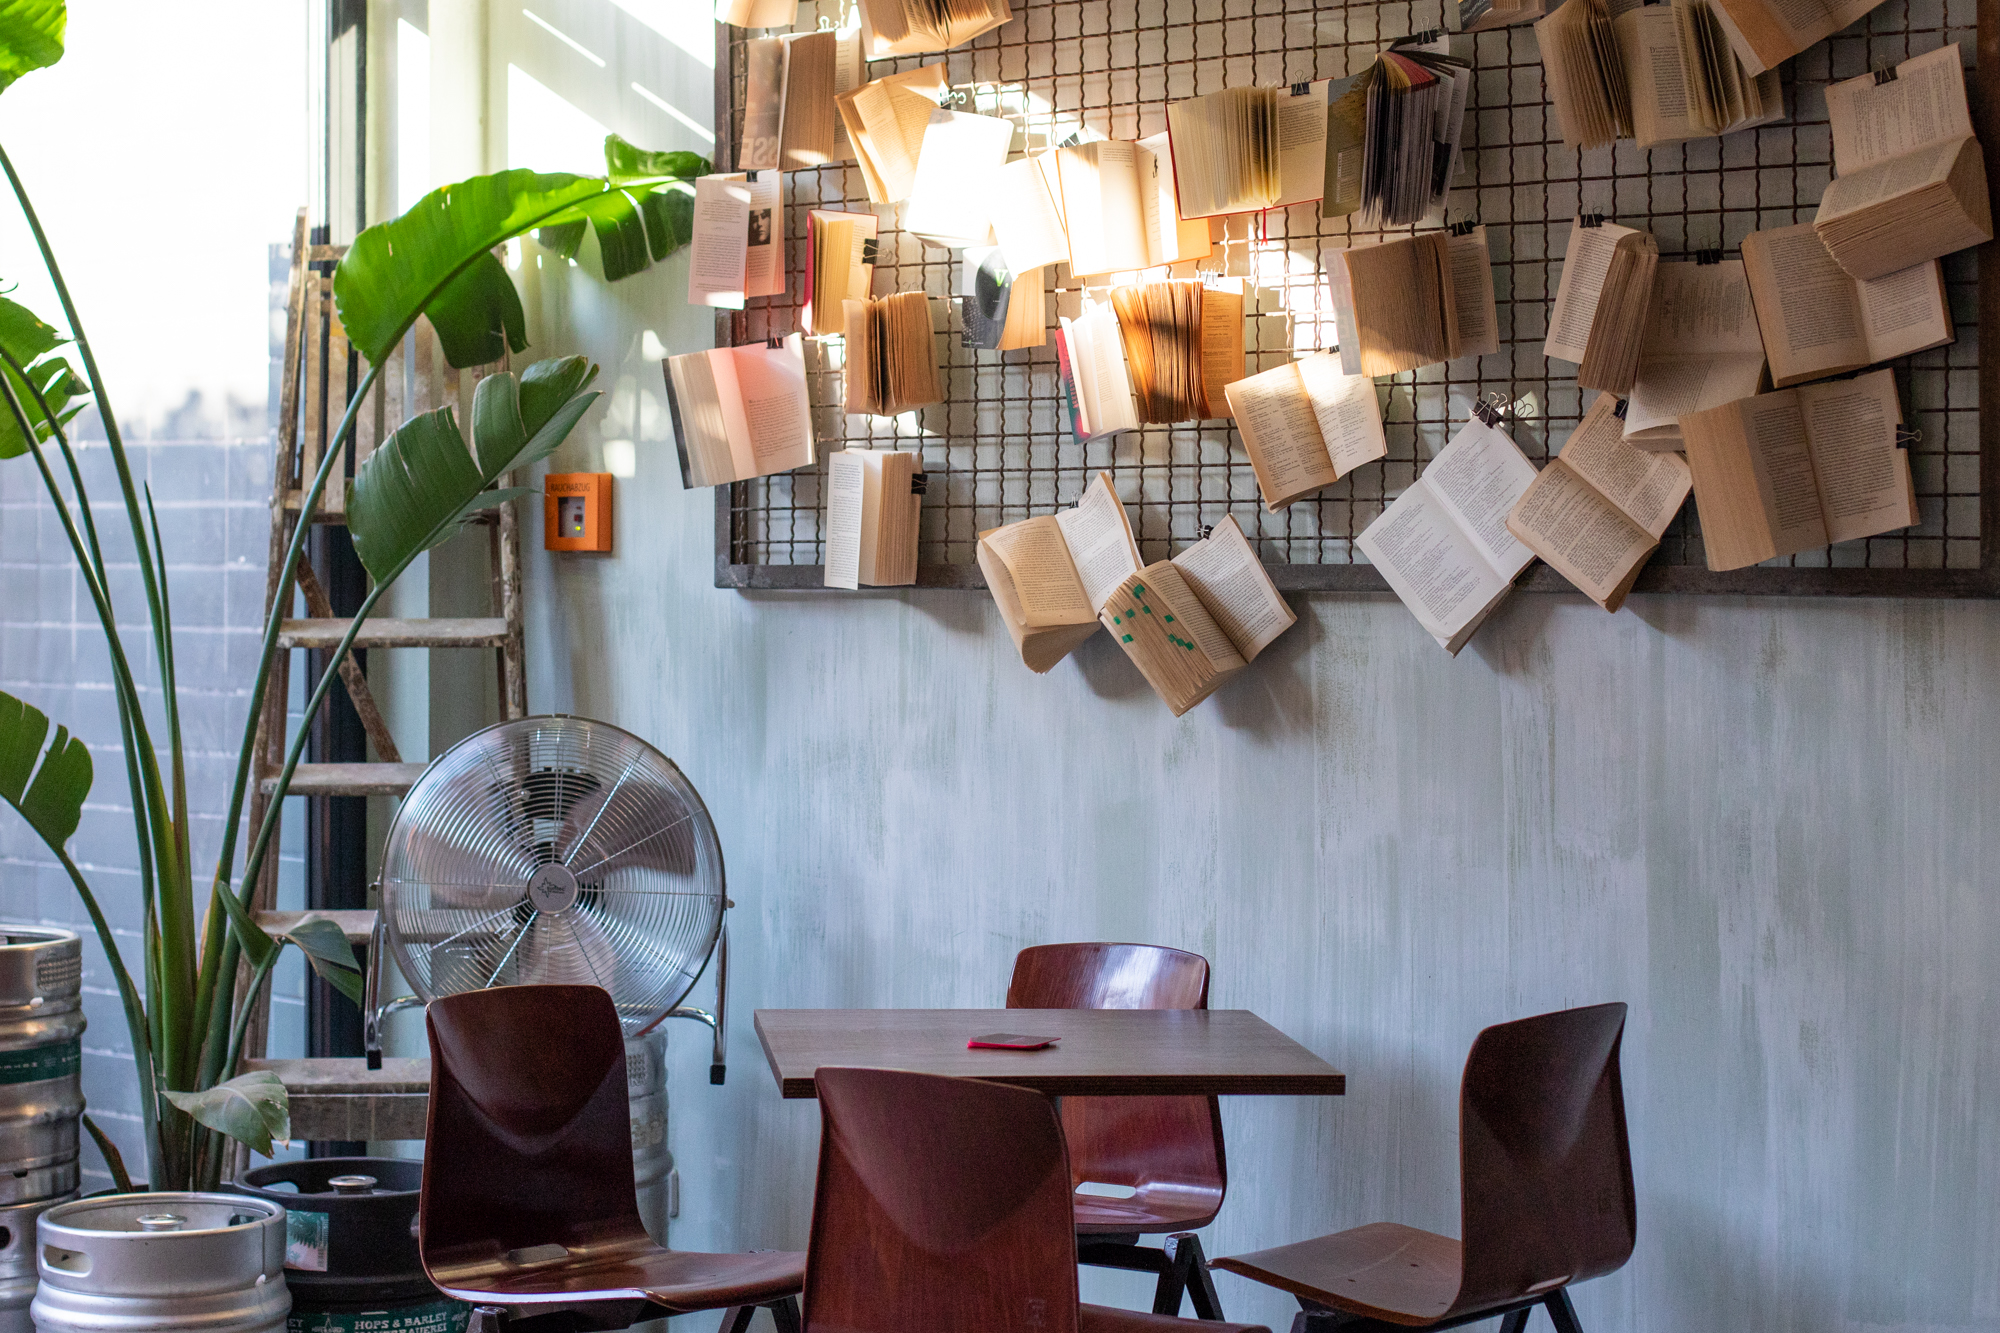 Table, chairs and books at Muted Horn, a craft beer bar in Berlin Neukölln